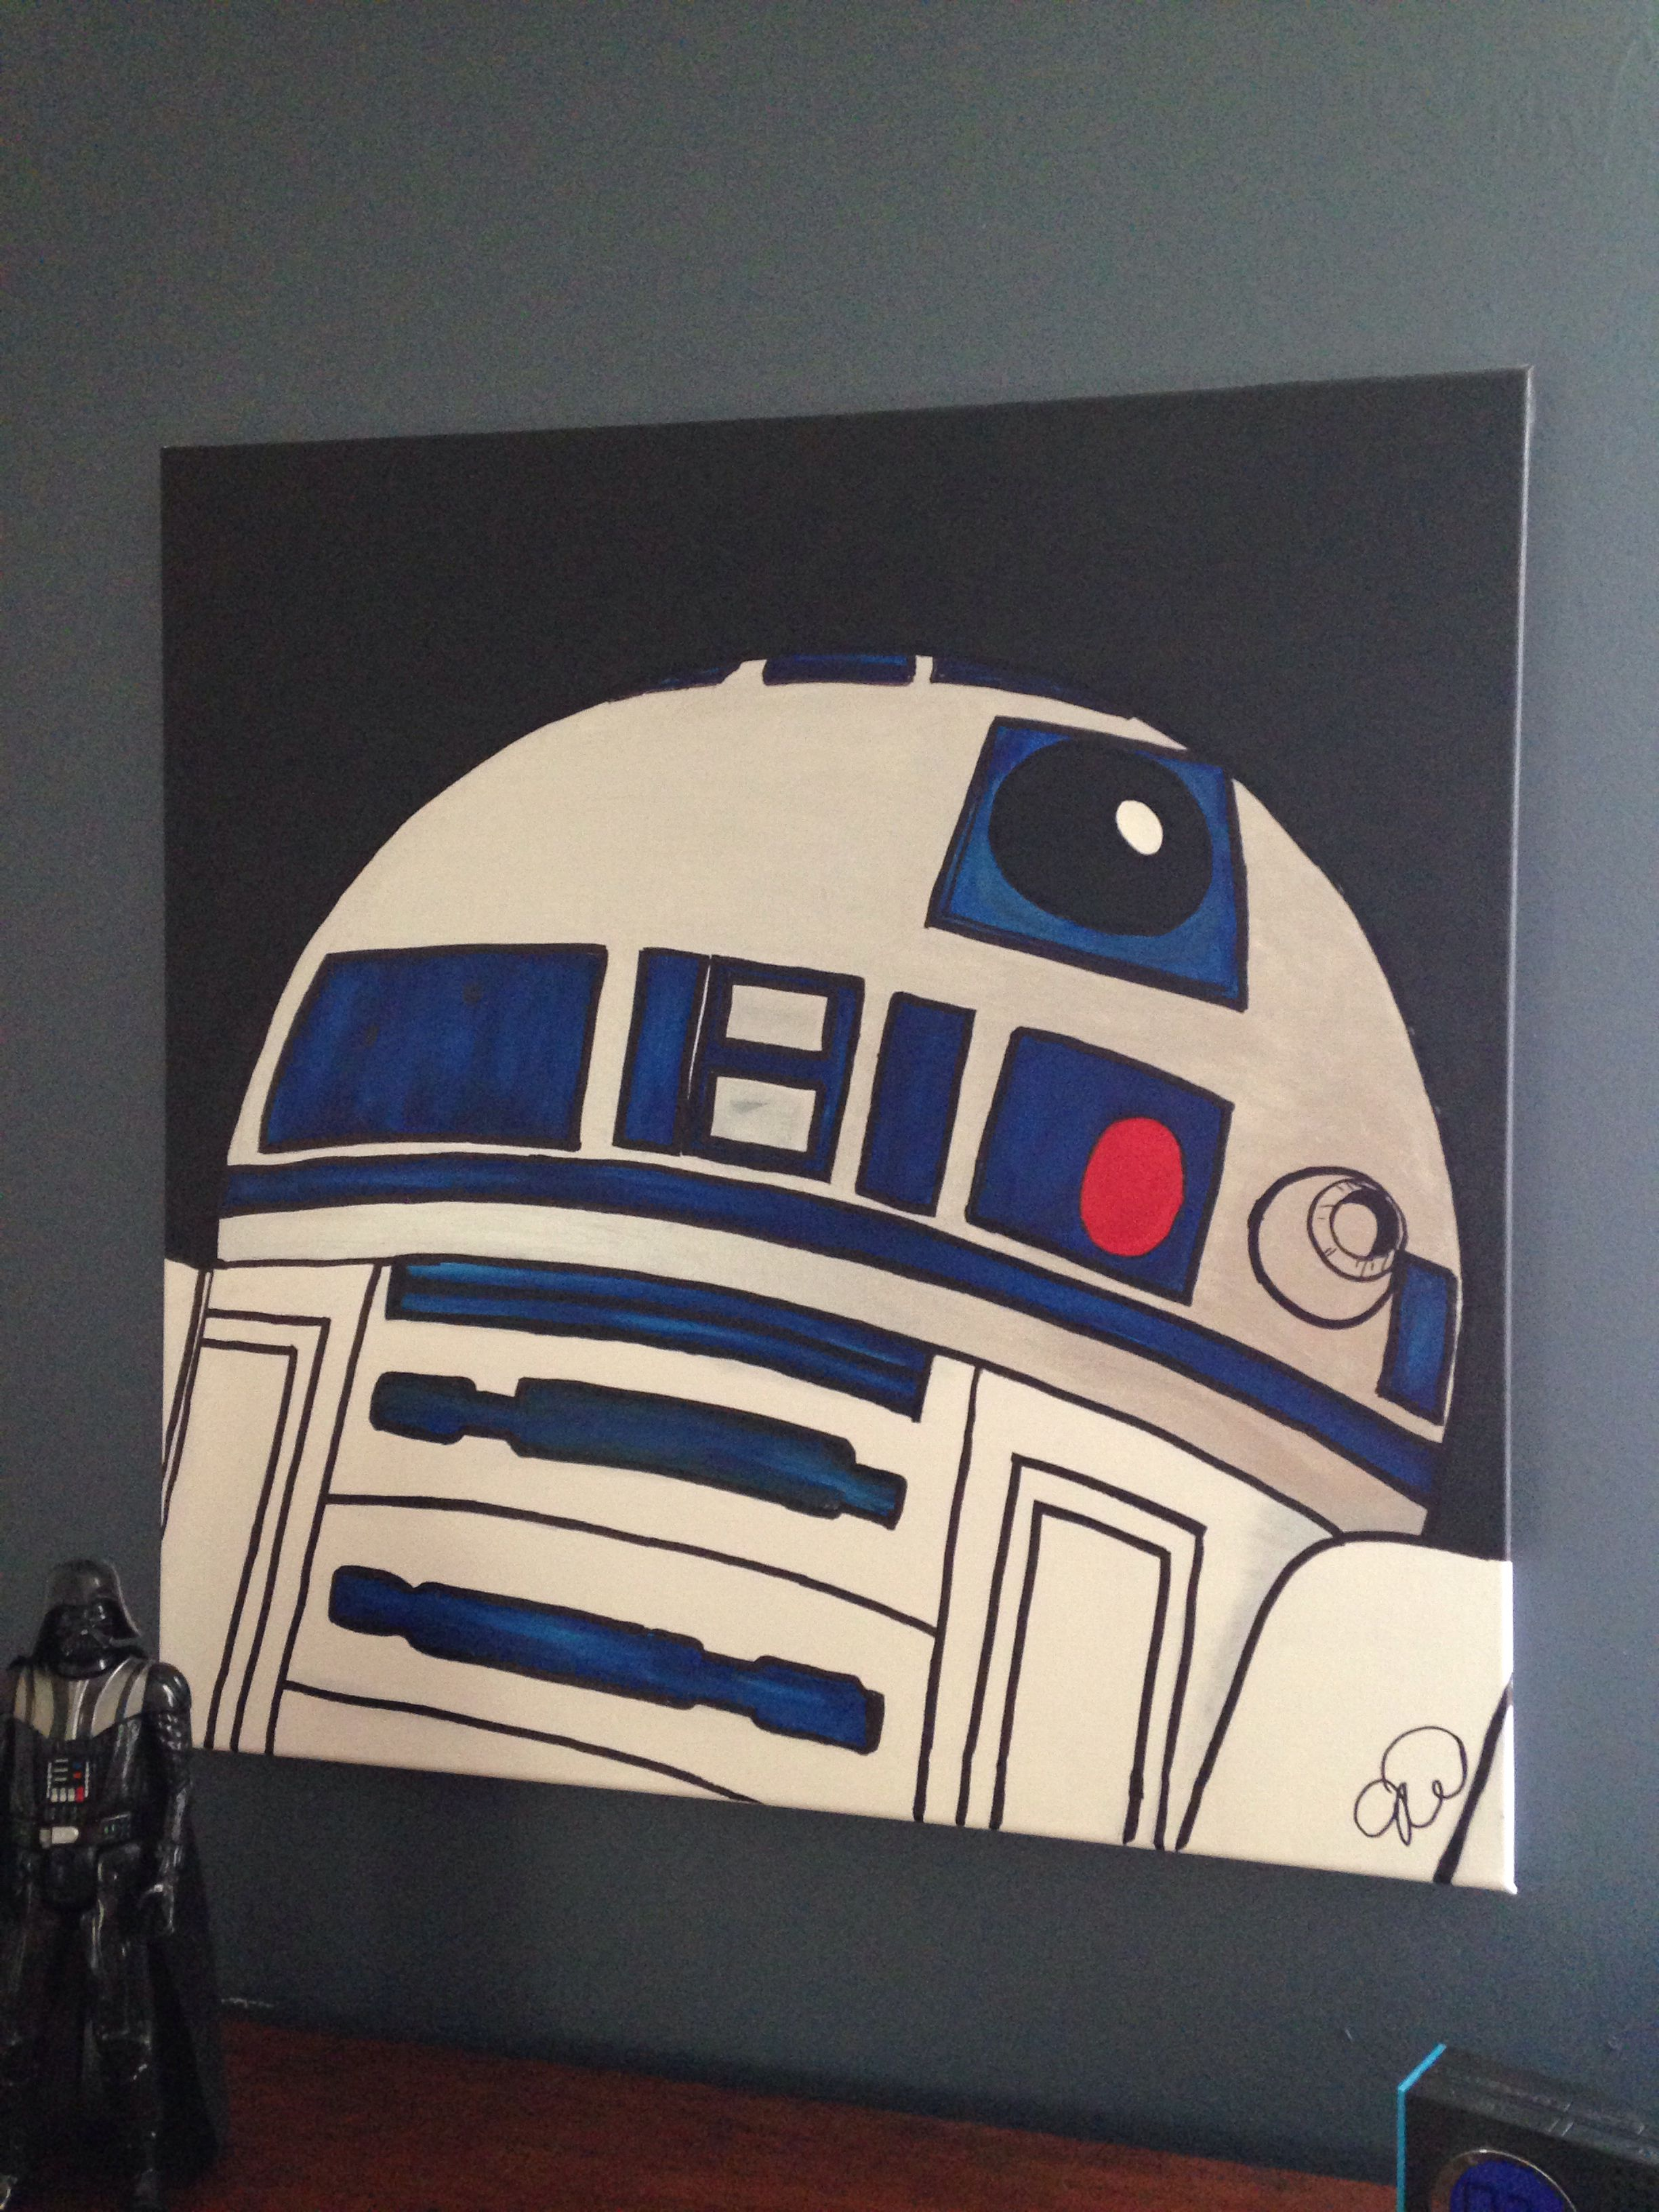 50+ Best Easy Painting Ideas For Wall Beginners and Canvas is part of Star wars painting, Star wars canvas painting, Star wars room, Star wars drawings, Canvas painting, Minion painting - Get creative wall painting ideas designs for a stylish home decor Latest home painting colour ideas, designs for bedrooms